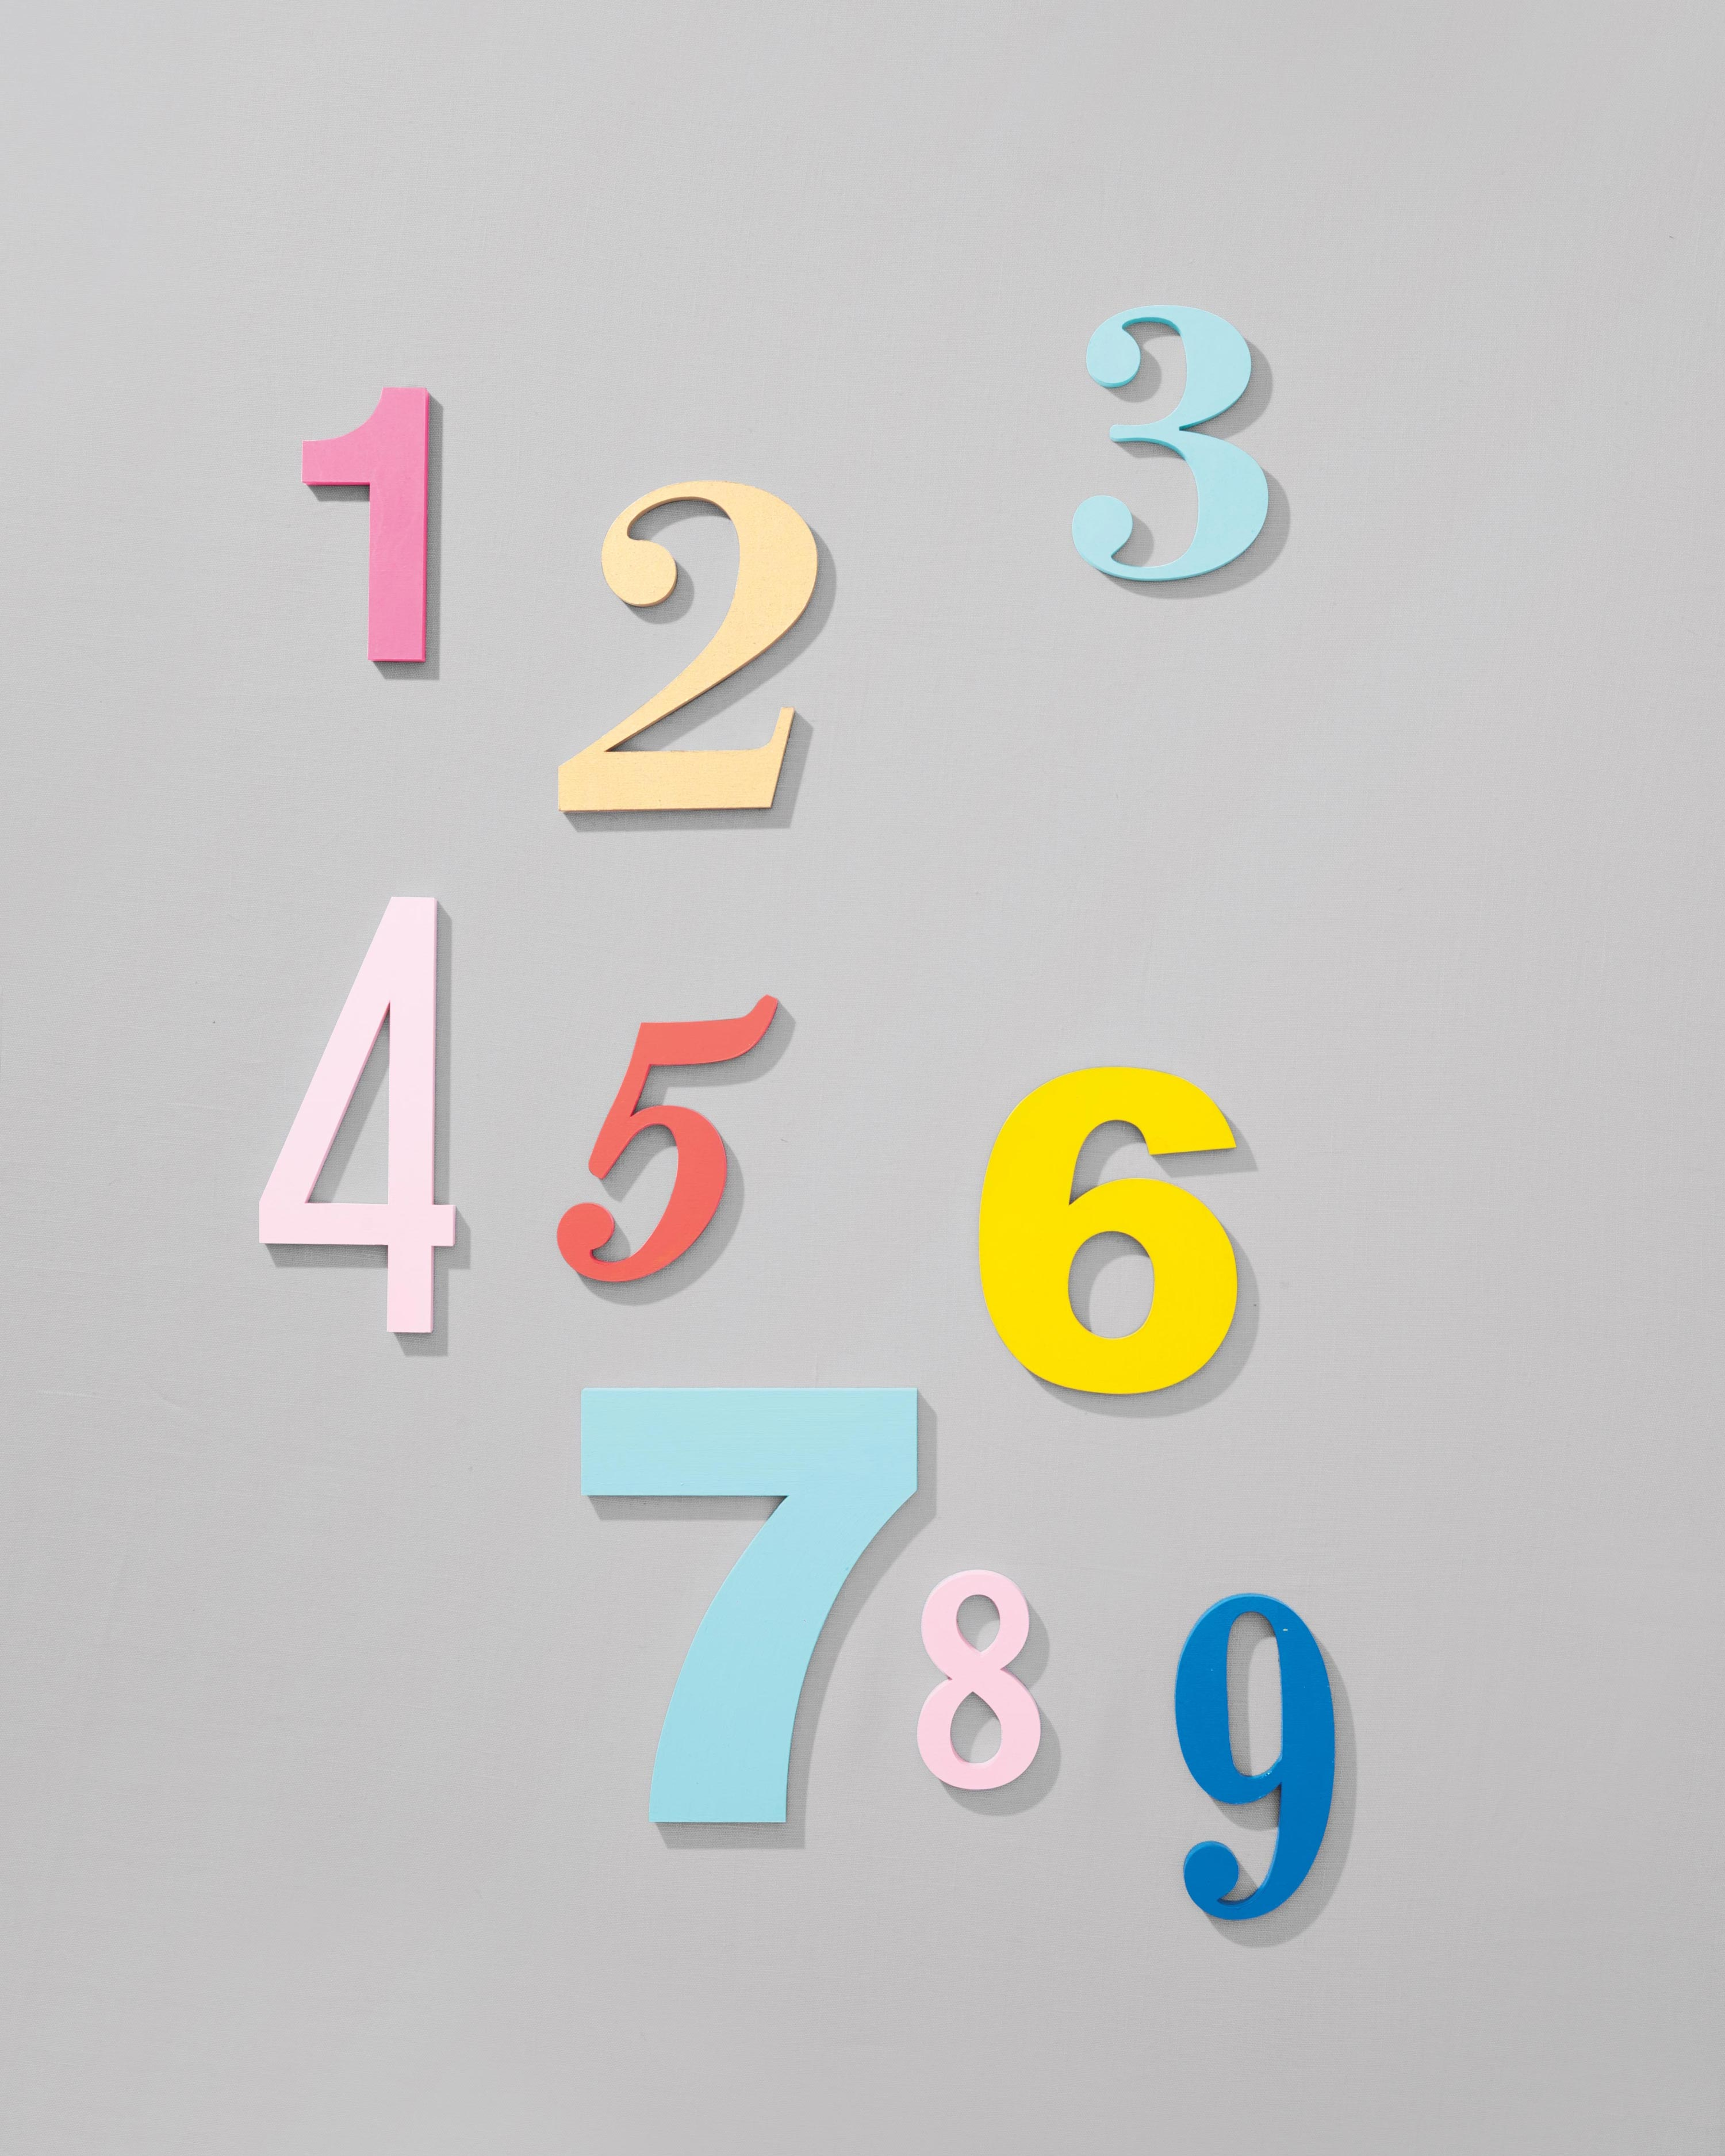 mpainted-table-numbers-028-d112637.jpg